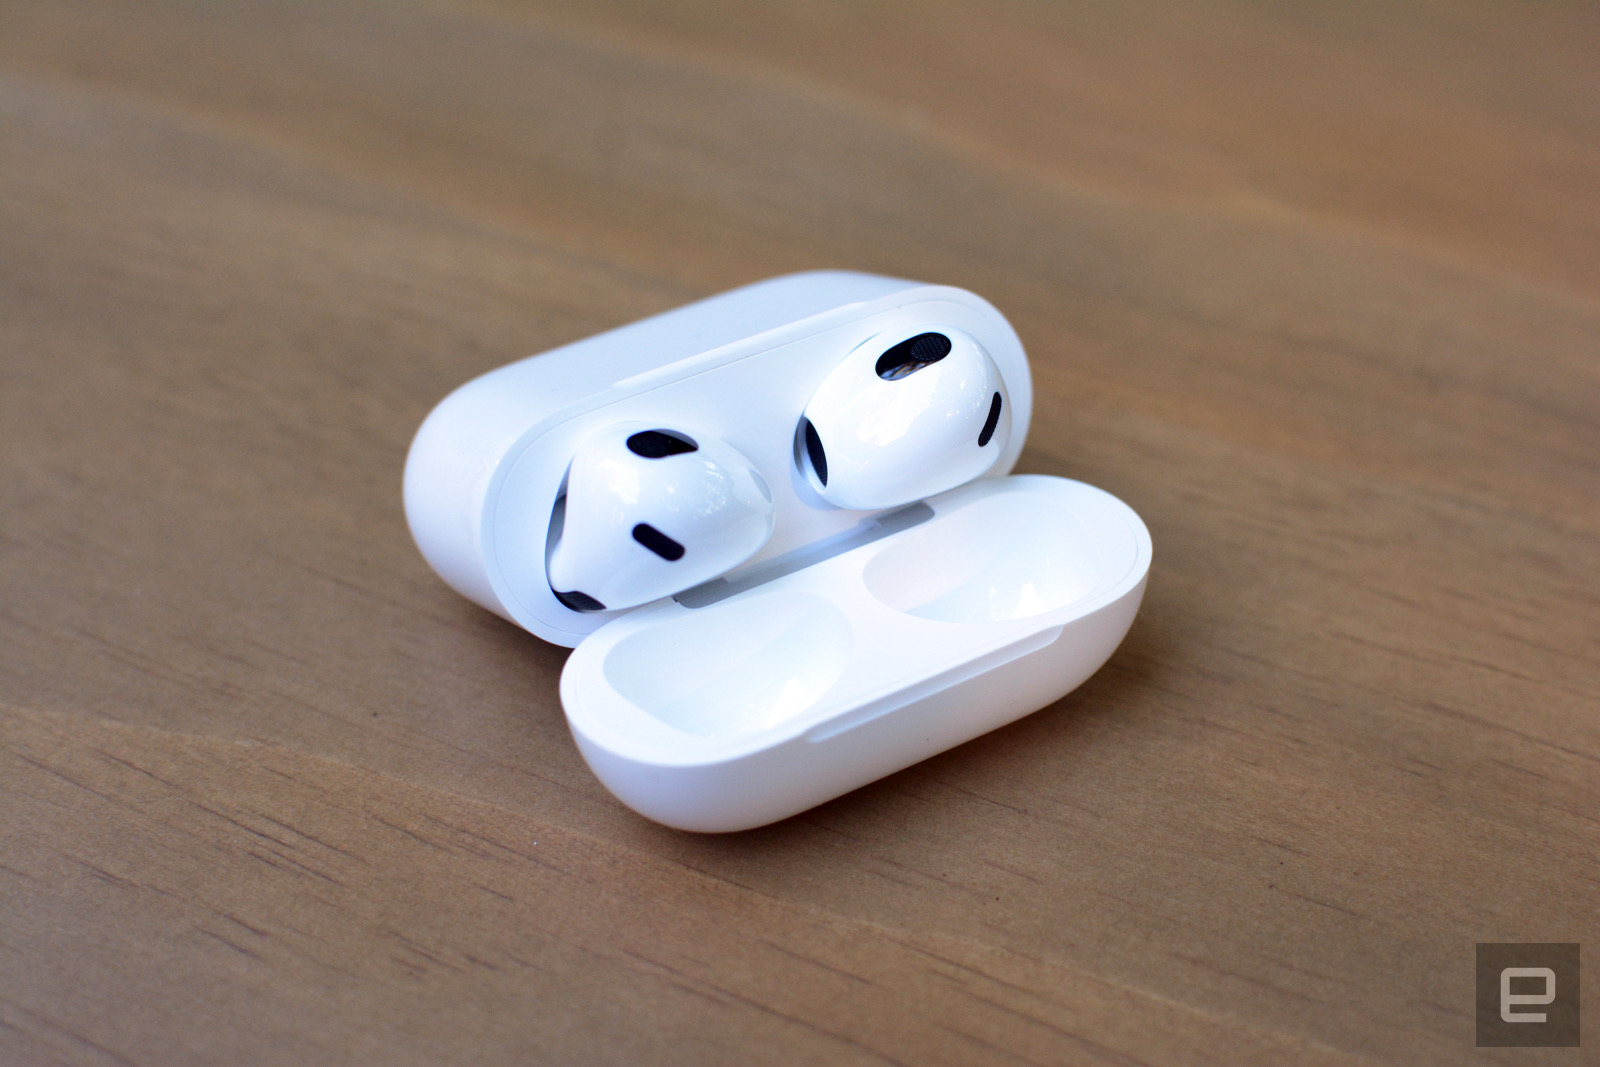 Apple totally overhauled AirPods for the third-generation version with the biggest changes coming in the design and audio quality.